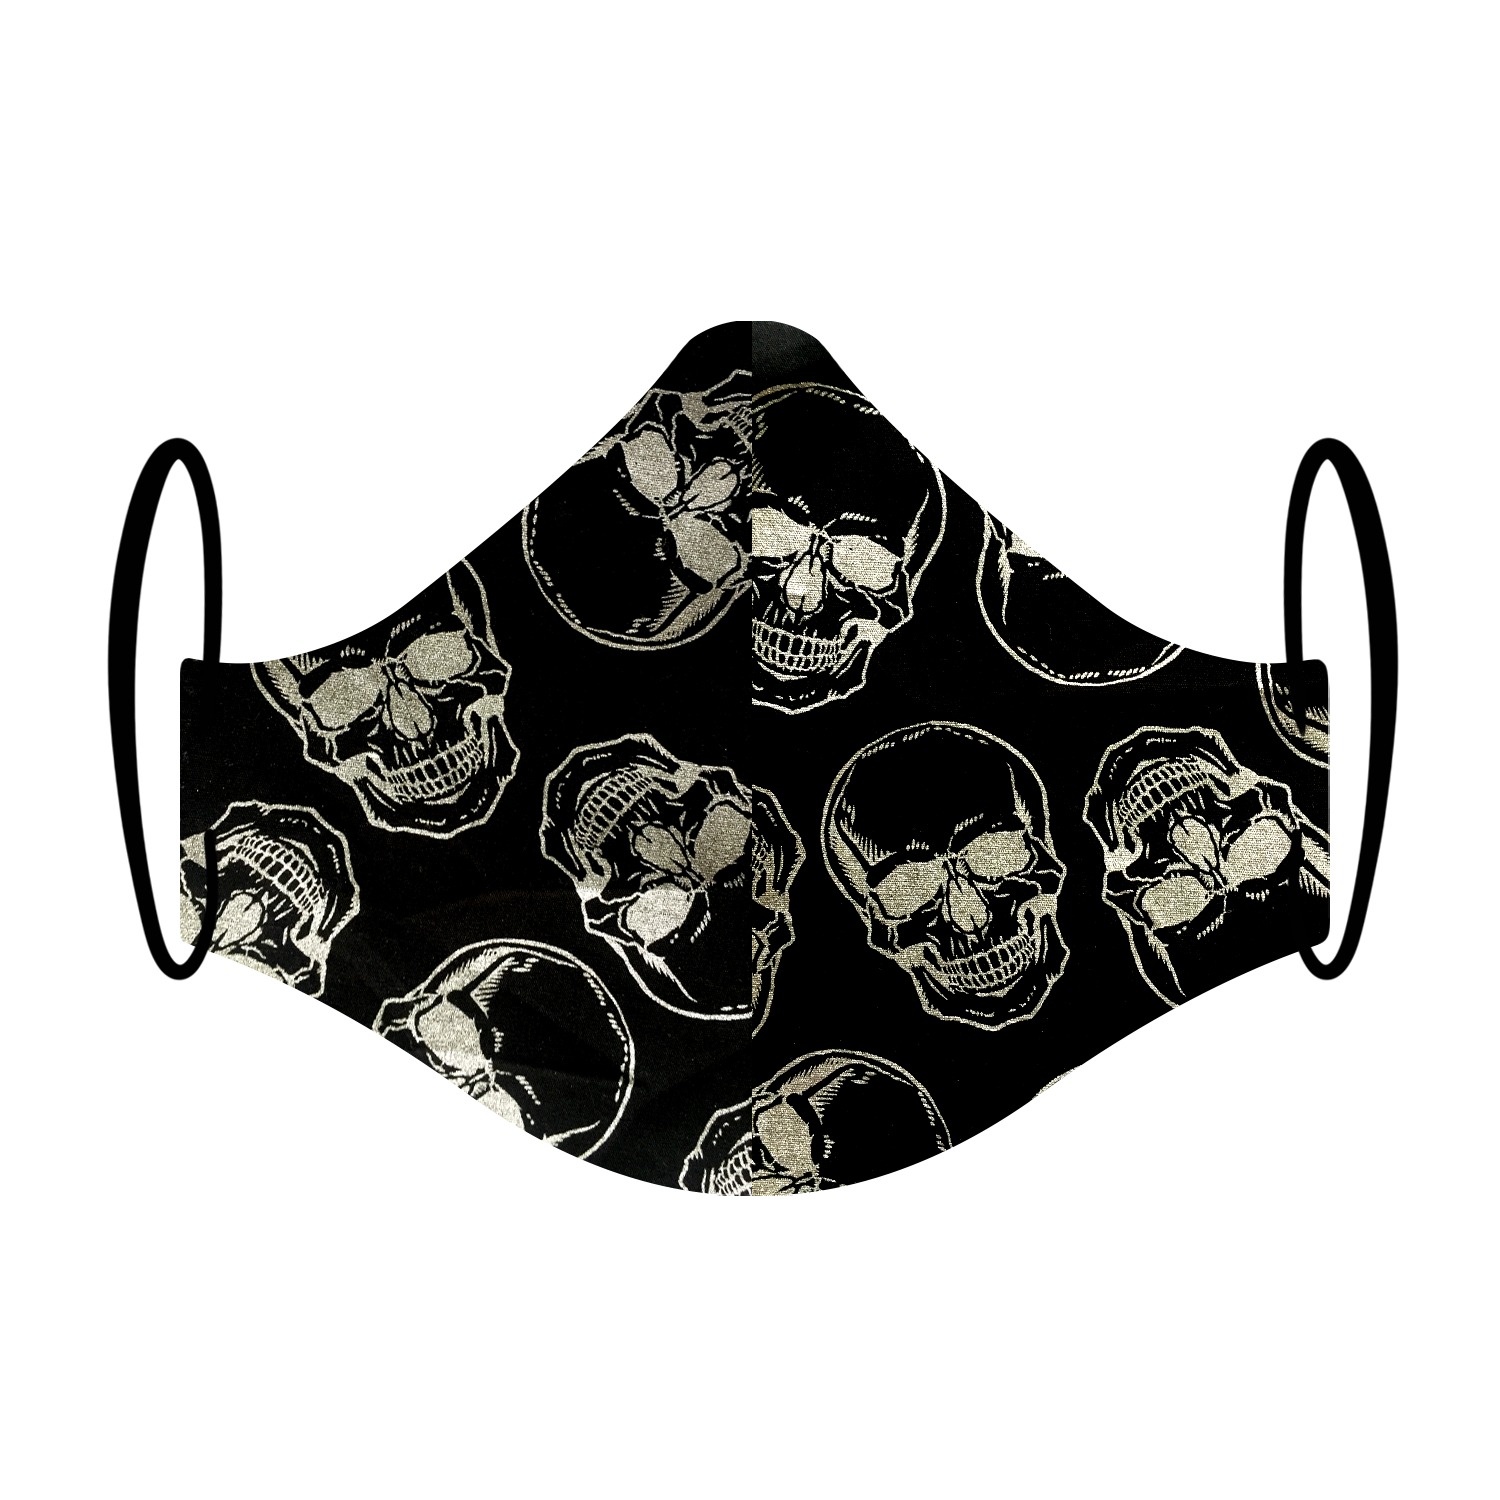 Triple layered face mask made in Melbourne Australia from cotton and poplin featuring a unique metal silver skulls print